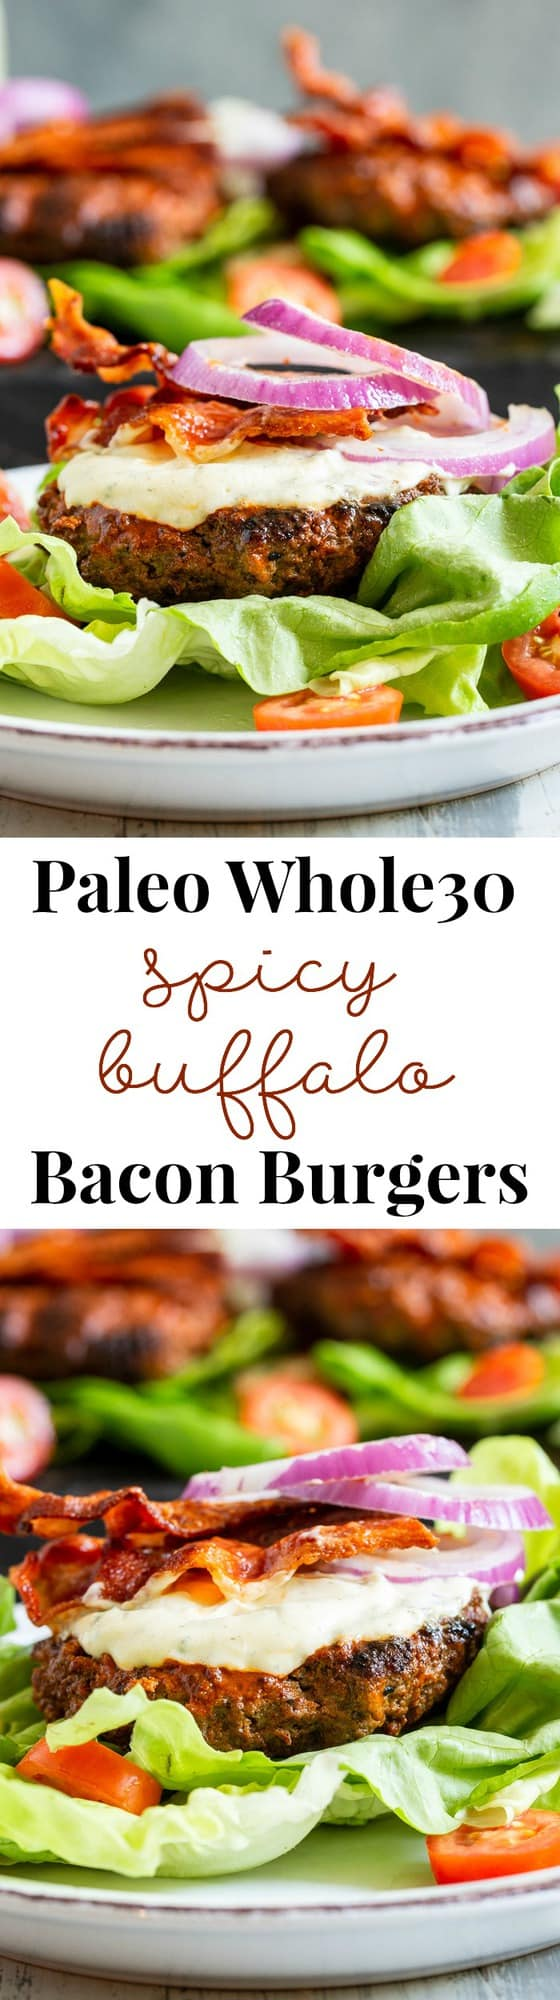 These spicy buffalo burgers are easy to make, and packed with tons of flavor.  Juicy spicy beef burgers are topped with smoky bacon and topped with a homemade cool ranch dressing.  Keep it Whole30 and keto friendly by wrapping in lettuce or serving over a big salad.